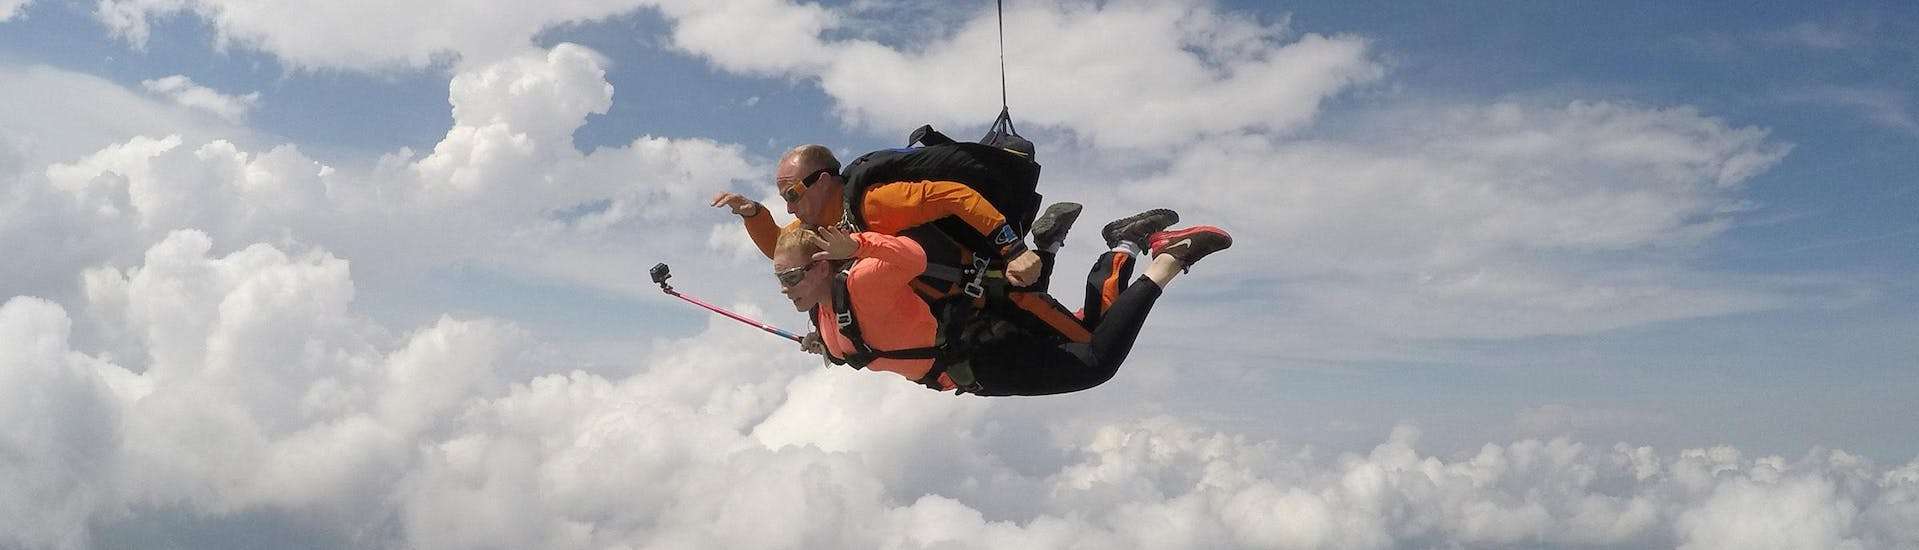 a bfc parachutisme skydiving pilot performs a Tandem Skydive at 4000m with his client in Dijon.